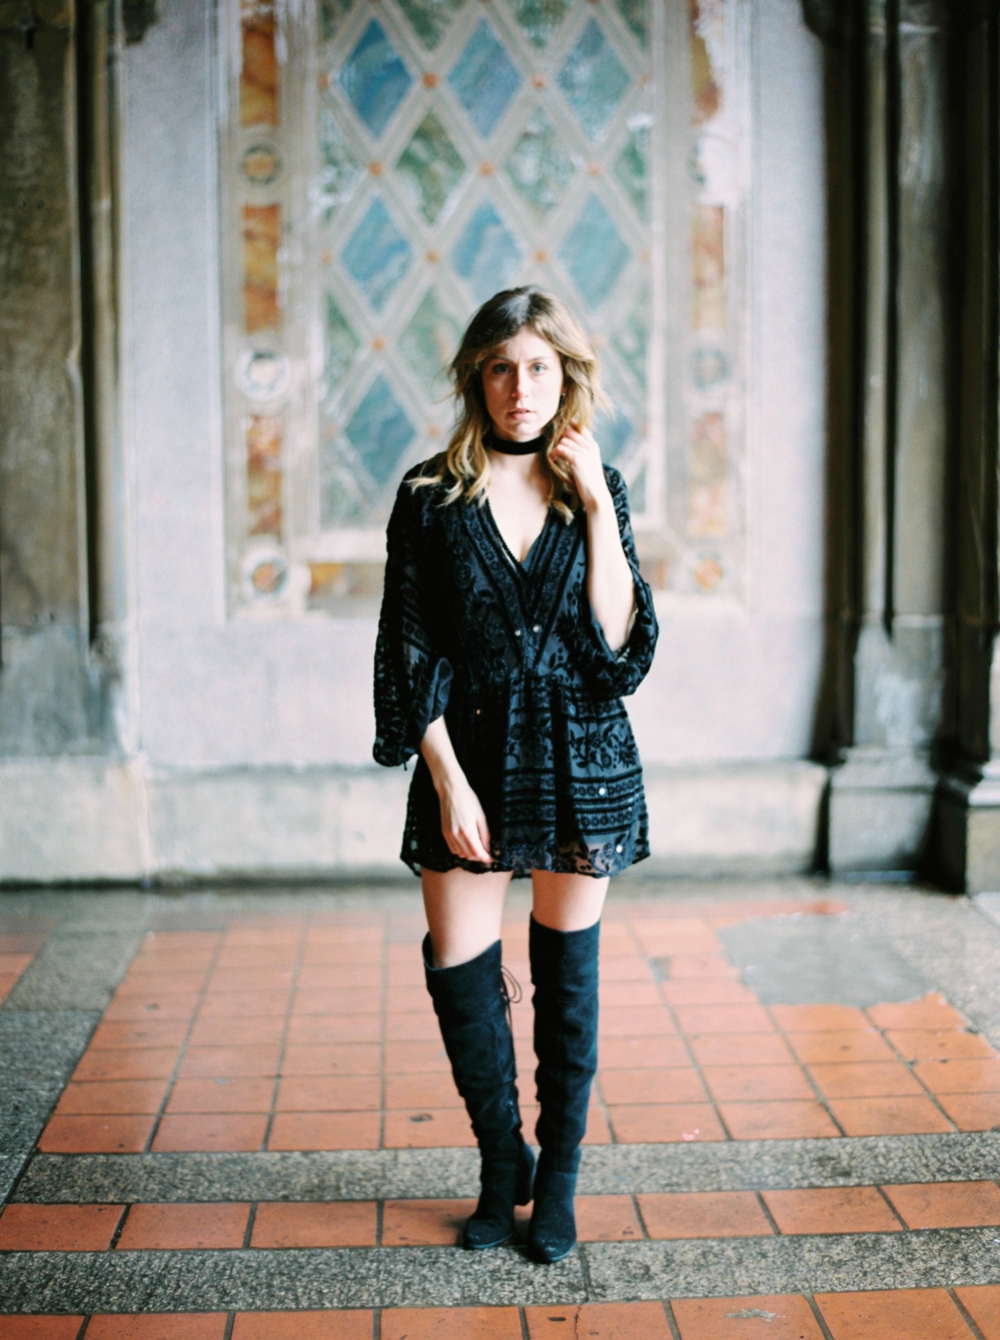 Fashion Photographer | New York City NYC Photography | Fashion Bloggers | Bethesda Terrace | For Love of Lemons